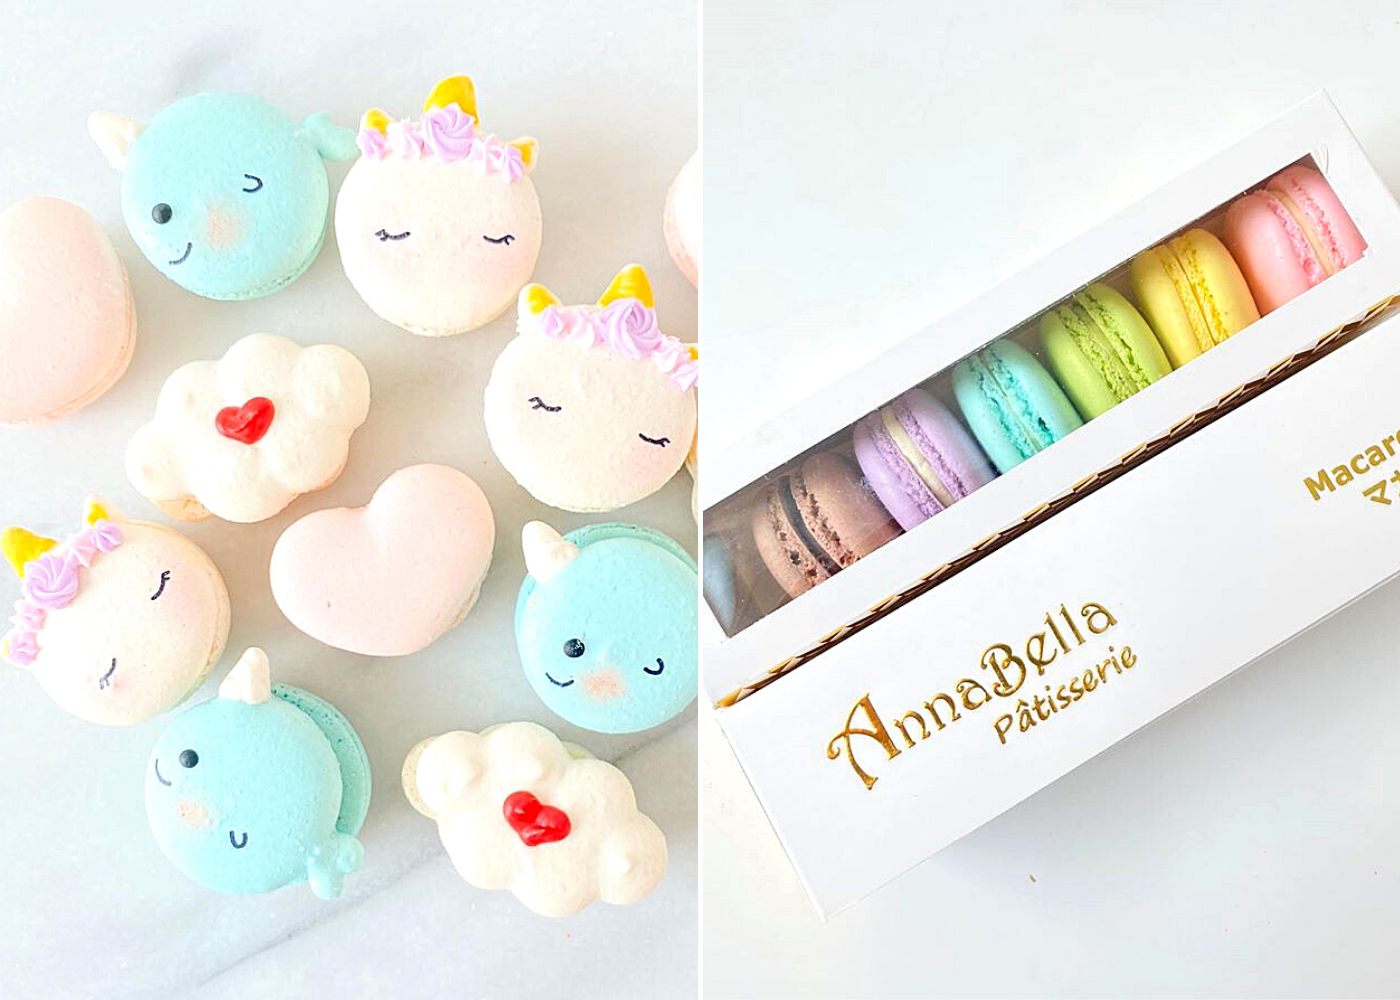 No need to hunt for macaron recipes when you can get the best macarons in Singapore delivered to you: AnnaBella Patisserie